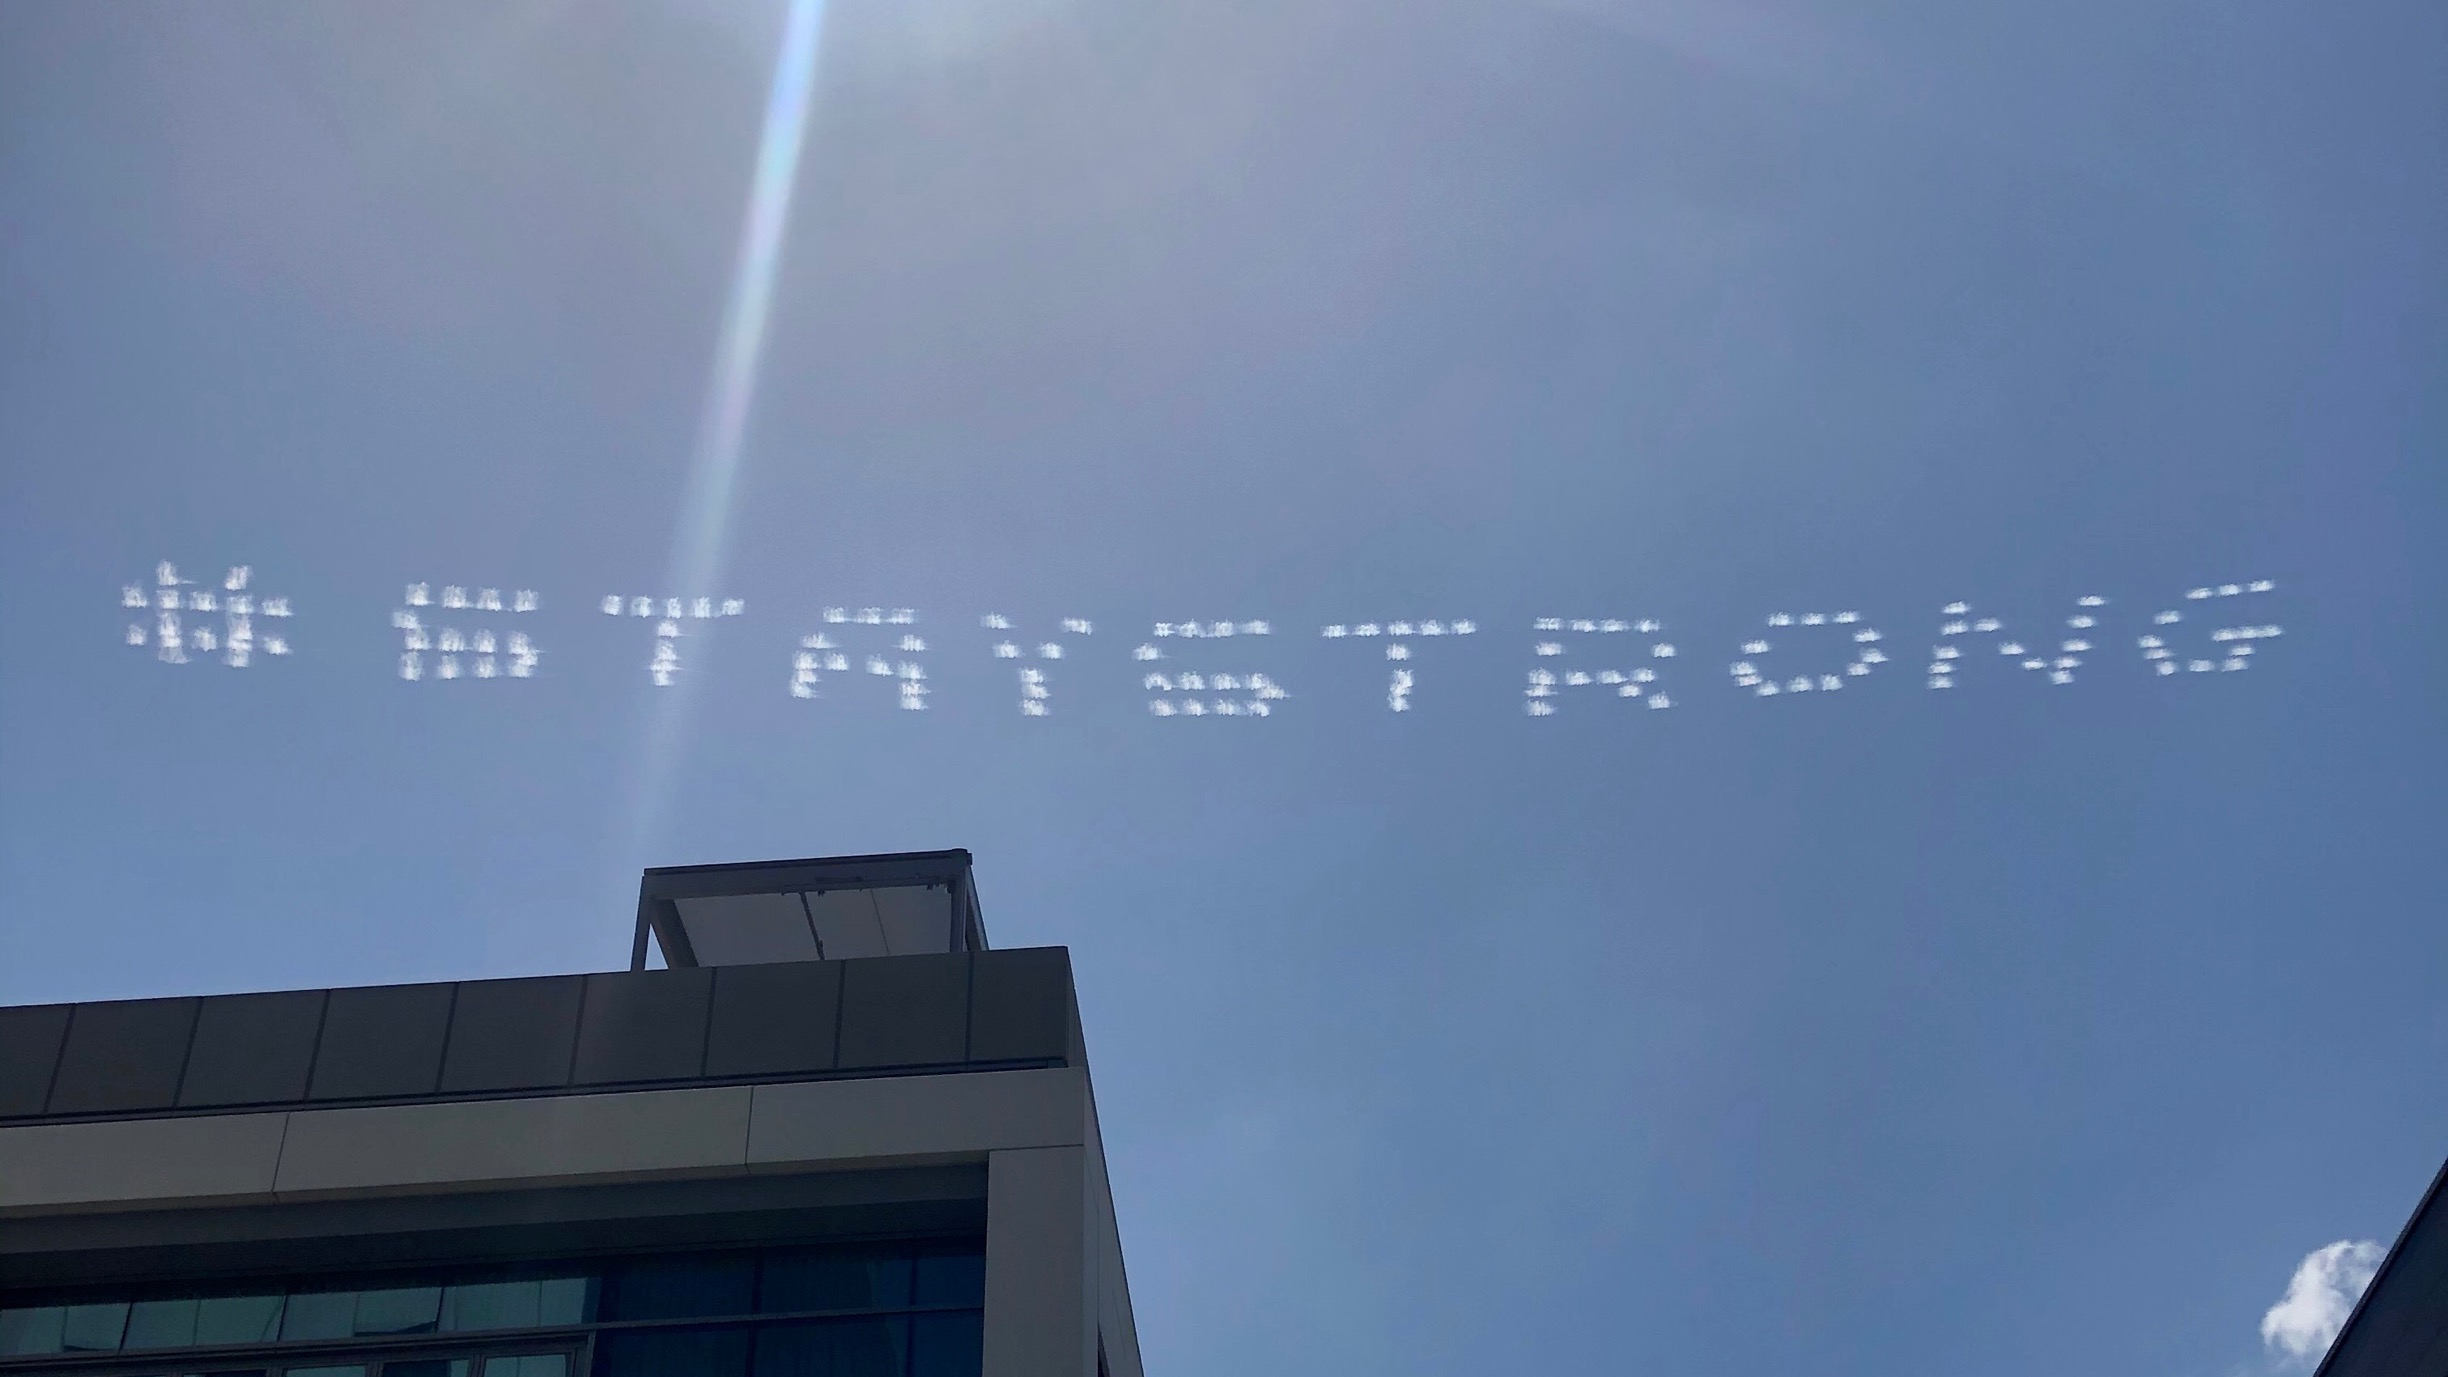 A message encouraging Angelenos to stay strong during the coronavirus crisis appeared in the sky above KTLA's lot in Hollywood on April 3, 2020. (Credit: Jason Ball / KTLA)